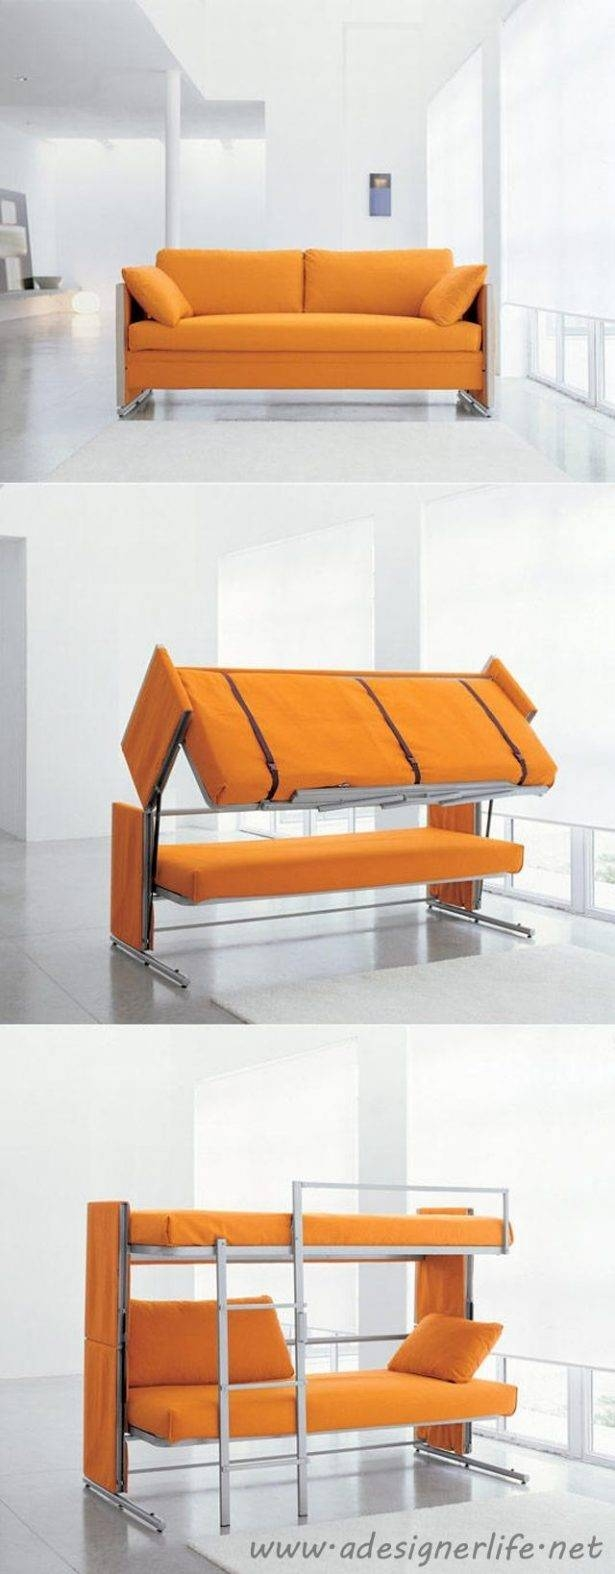 Sofa Converts To Bunk Bed | Imonics pertaining to Sofas Converts To Bunk Bed (Image 13 of 15)